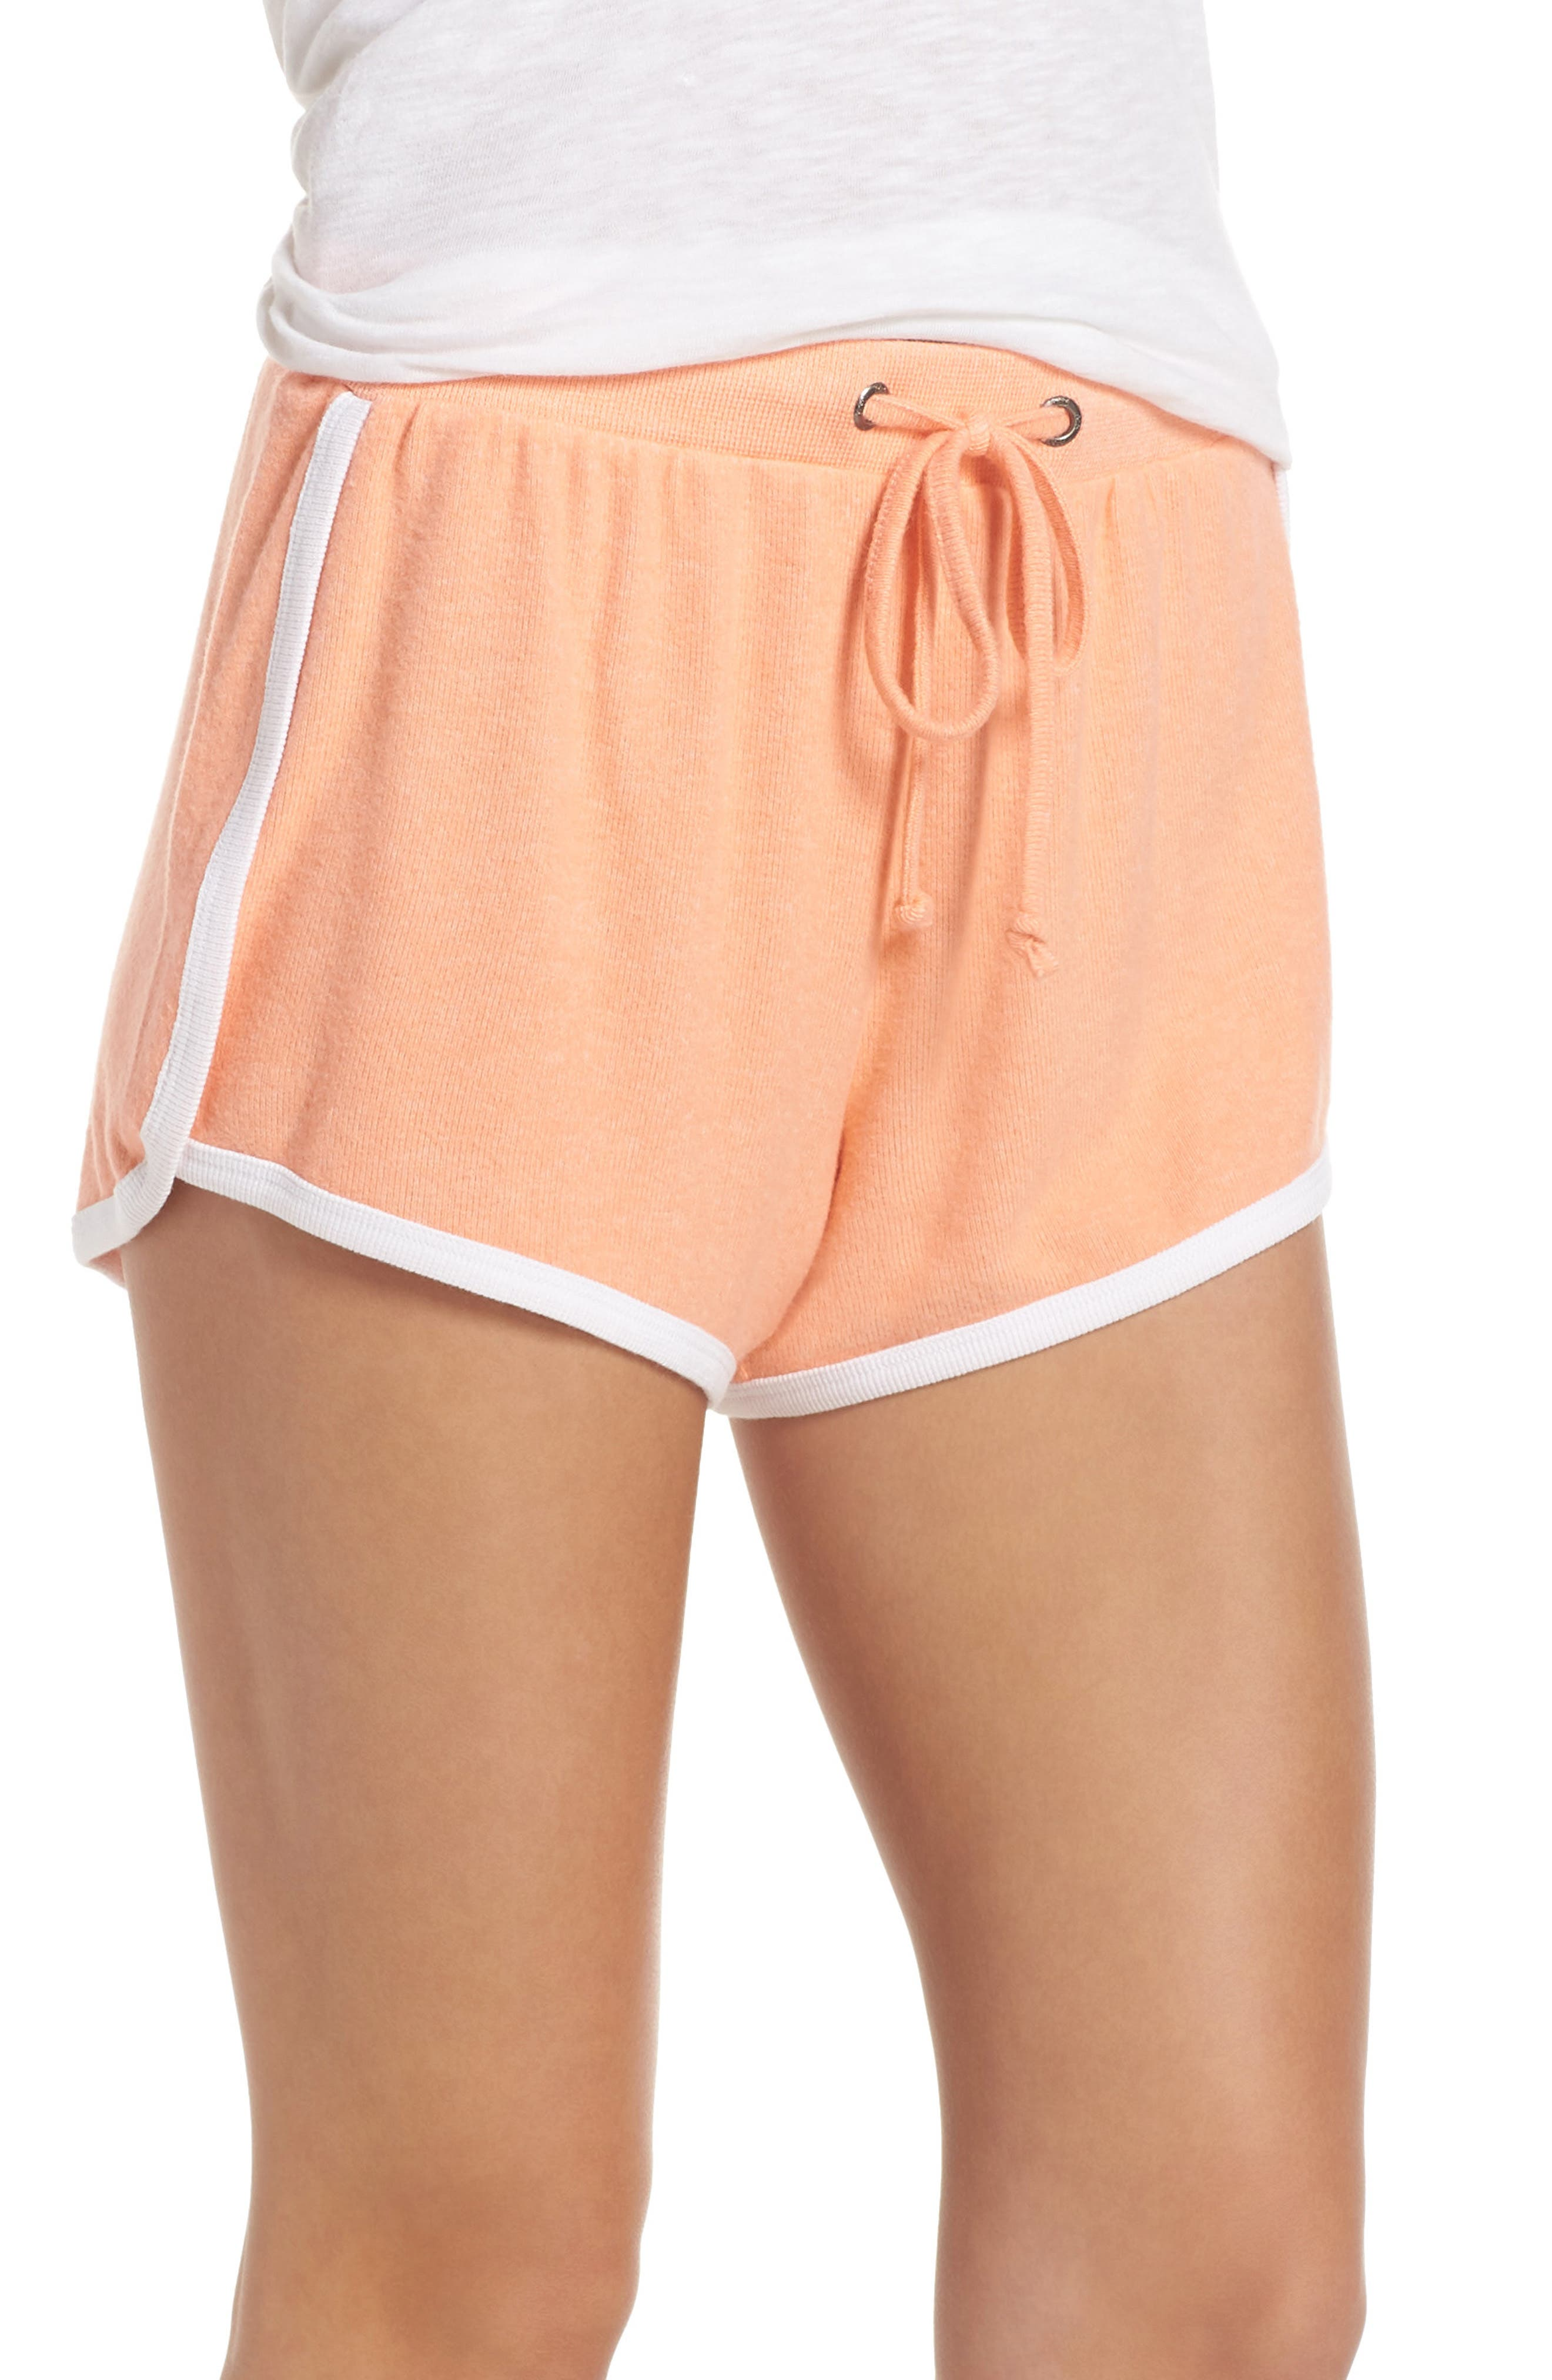 Too Cool Shorts,                         Main,                         color, CORAL PINK